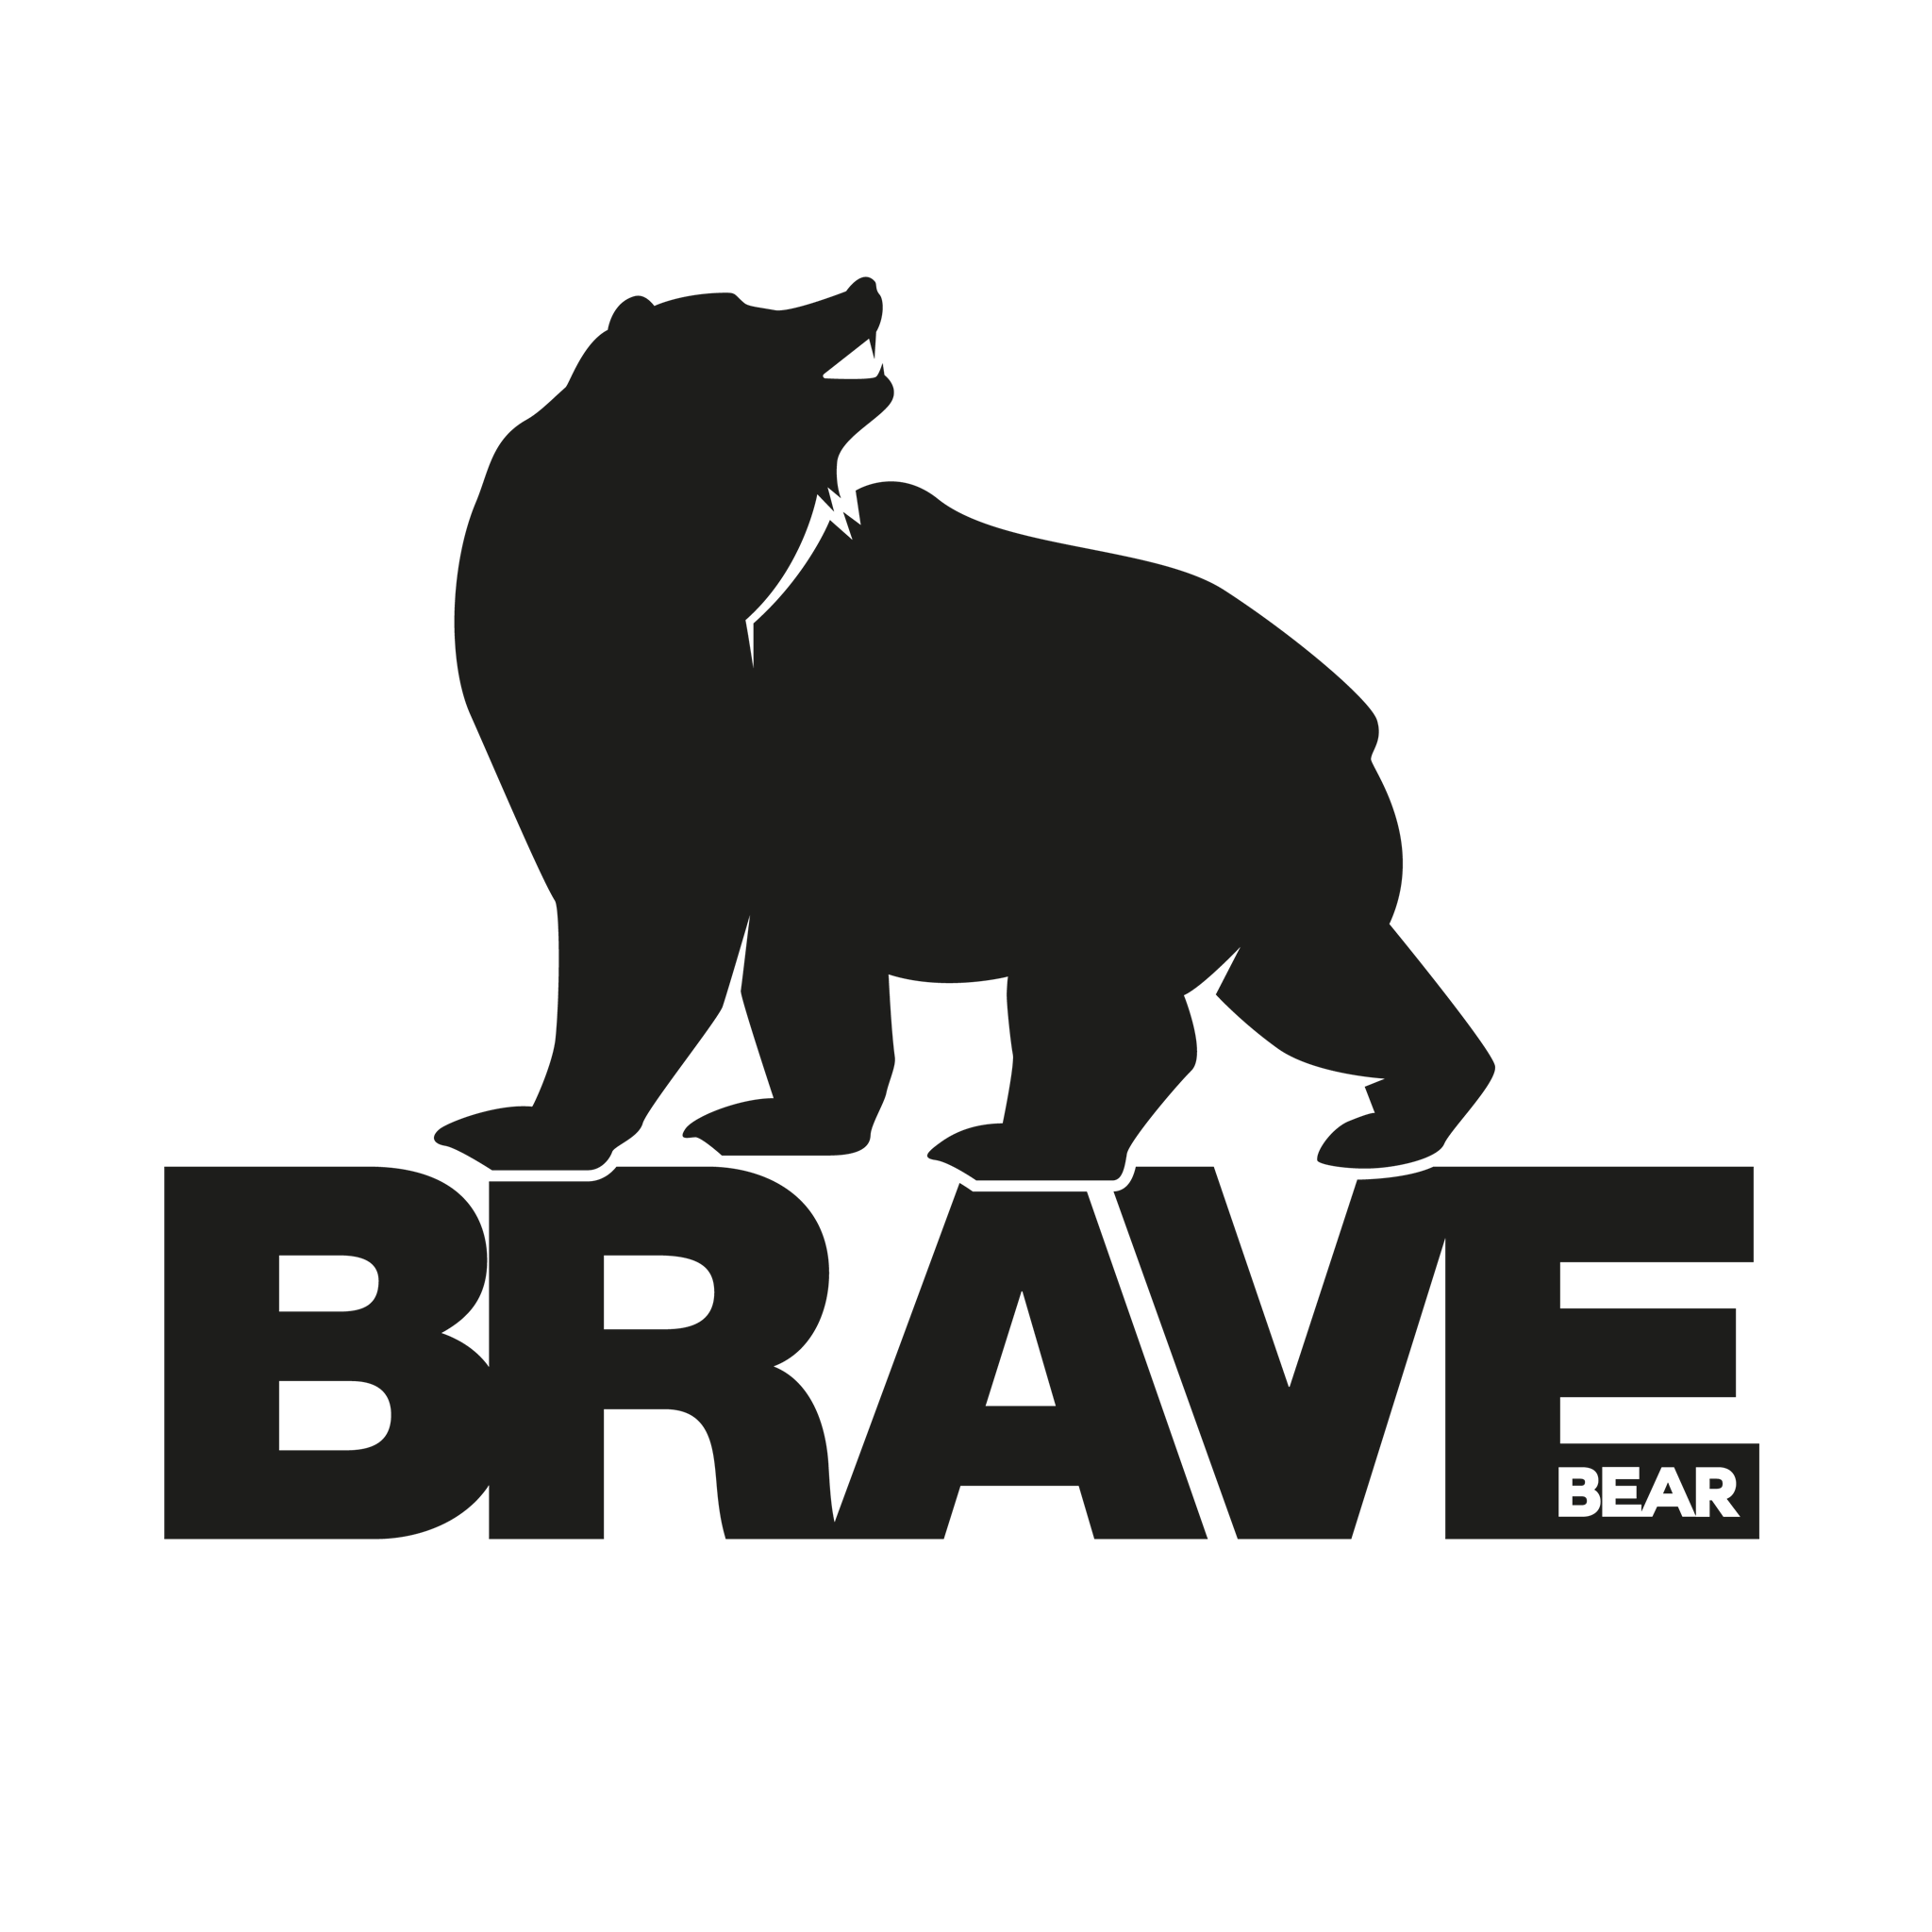 Brave Bear Marketing Ltd Logo